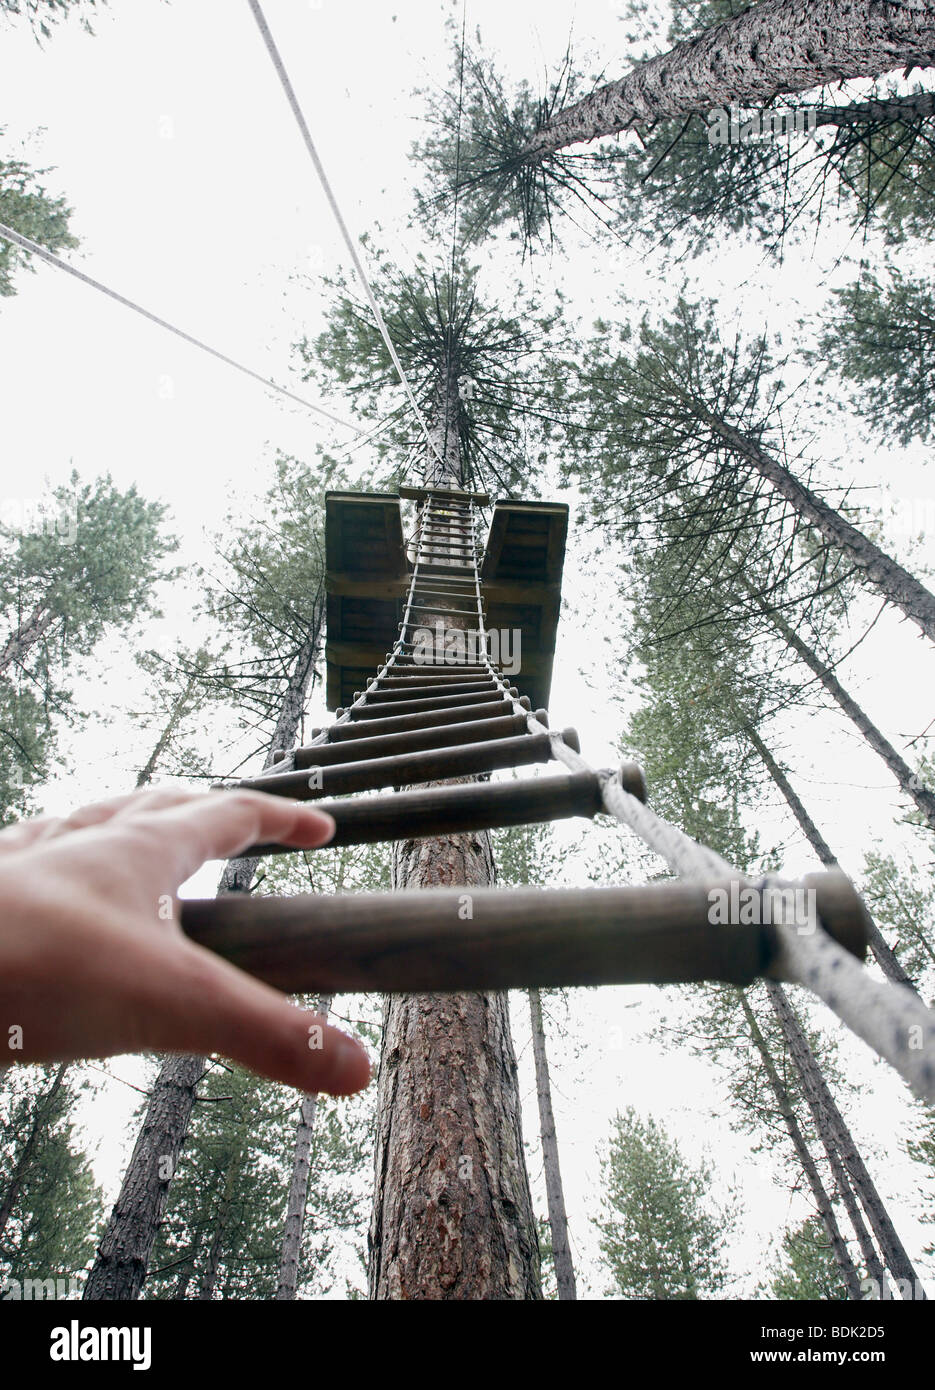 a hand reaches to grab a rope ladder to climb to the top of a tree - Stock Image